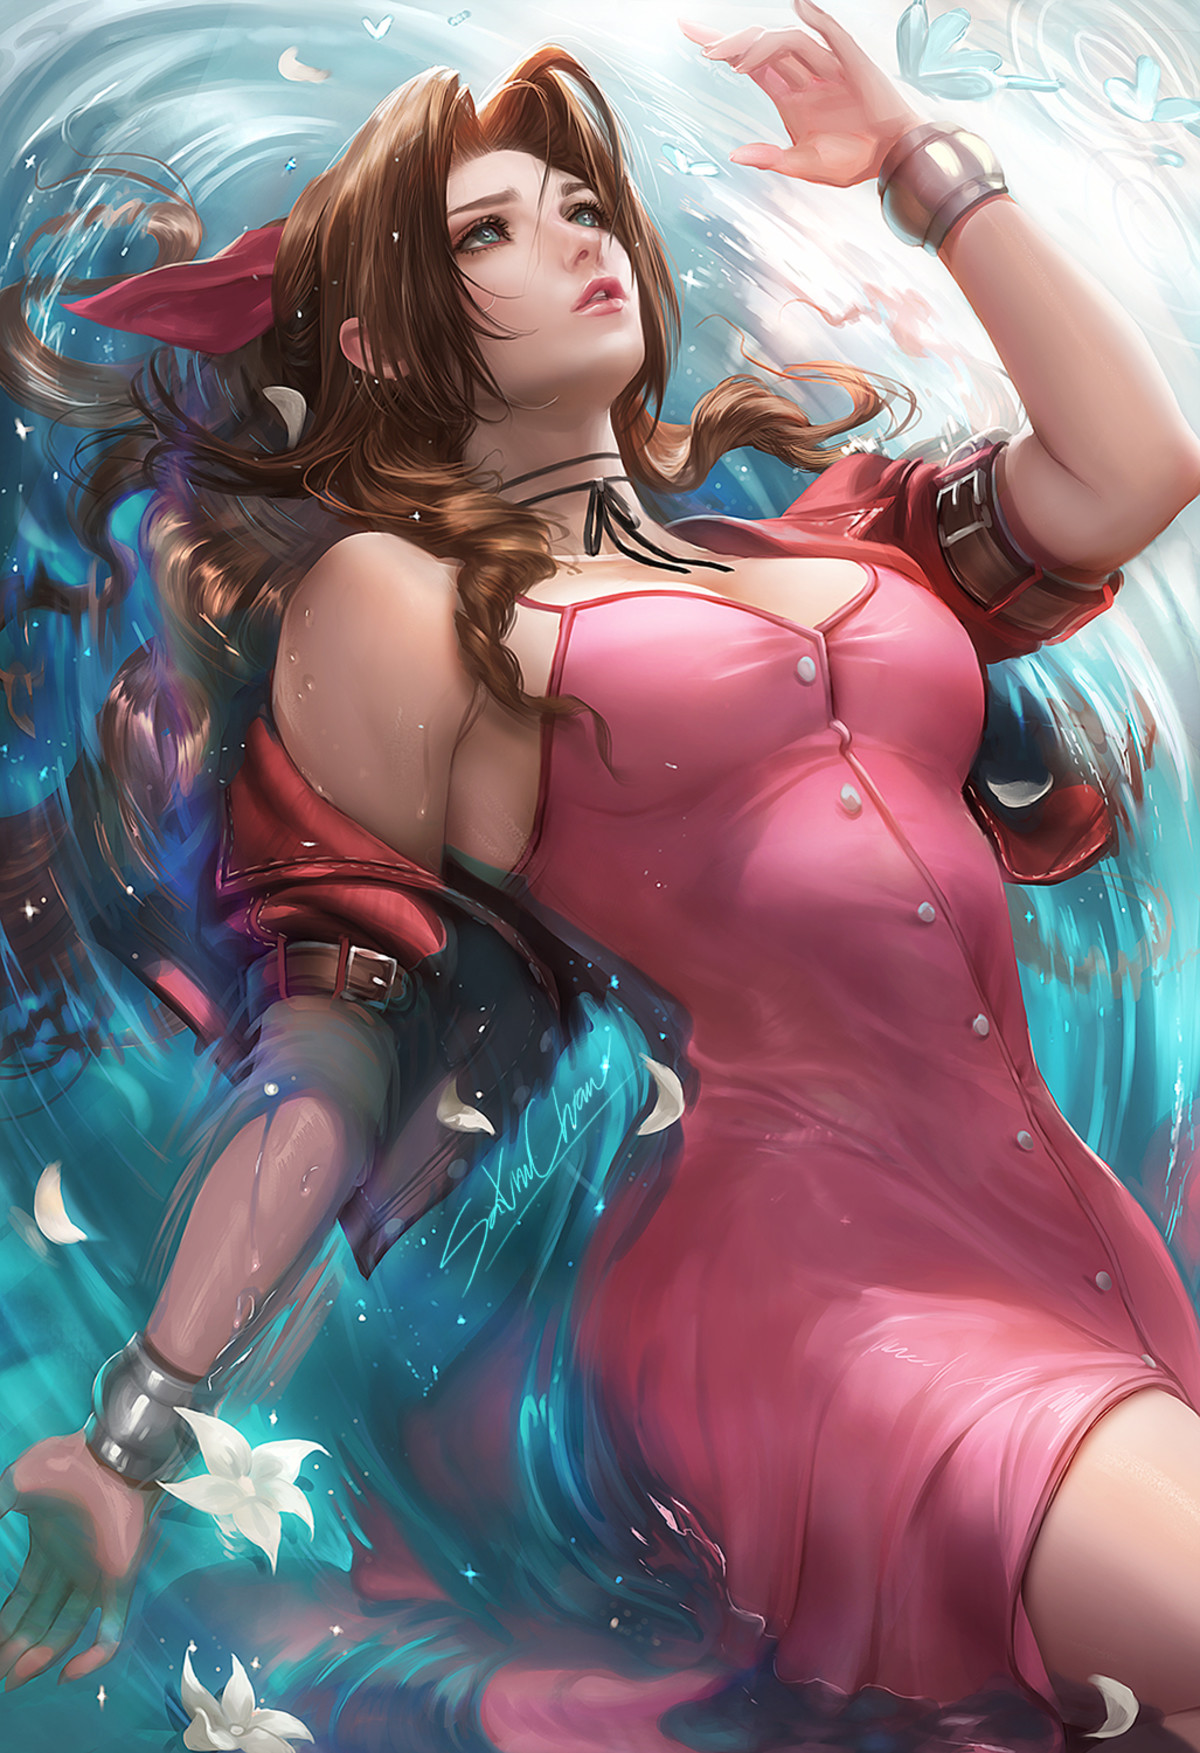 Aerith by Sakimichan. .. she seems to be missing a hole...